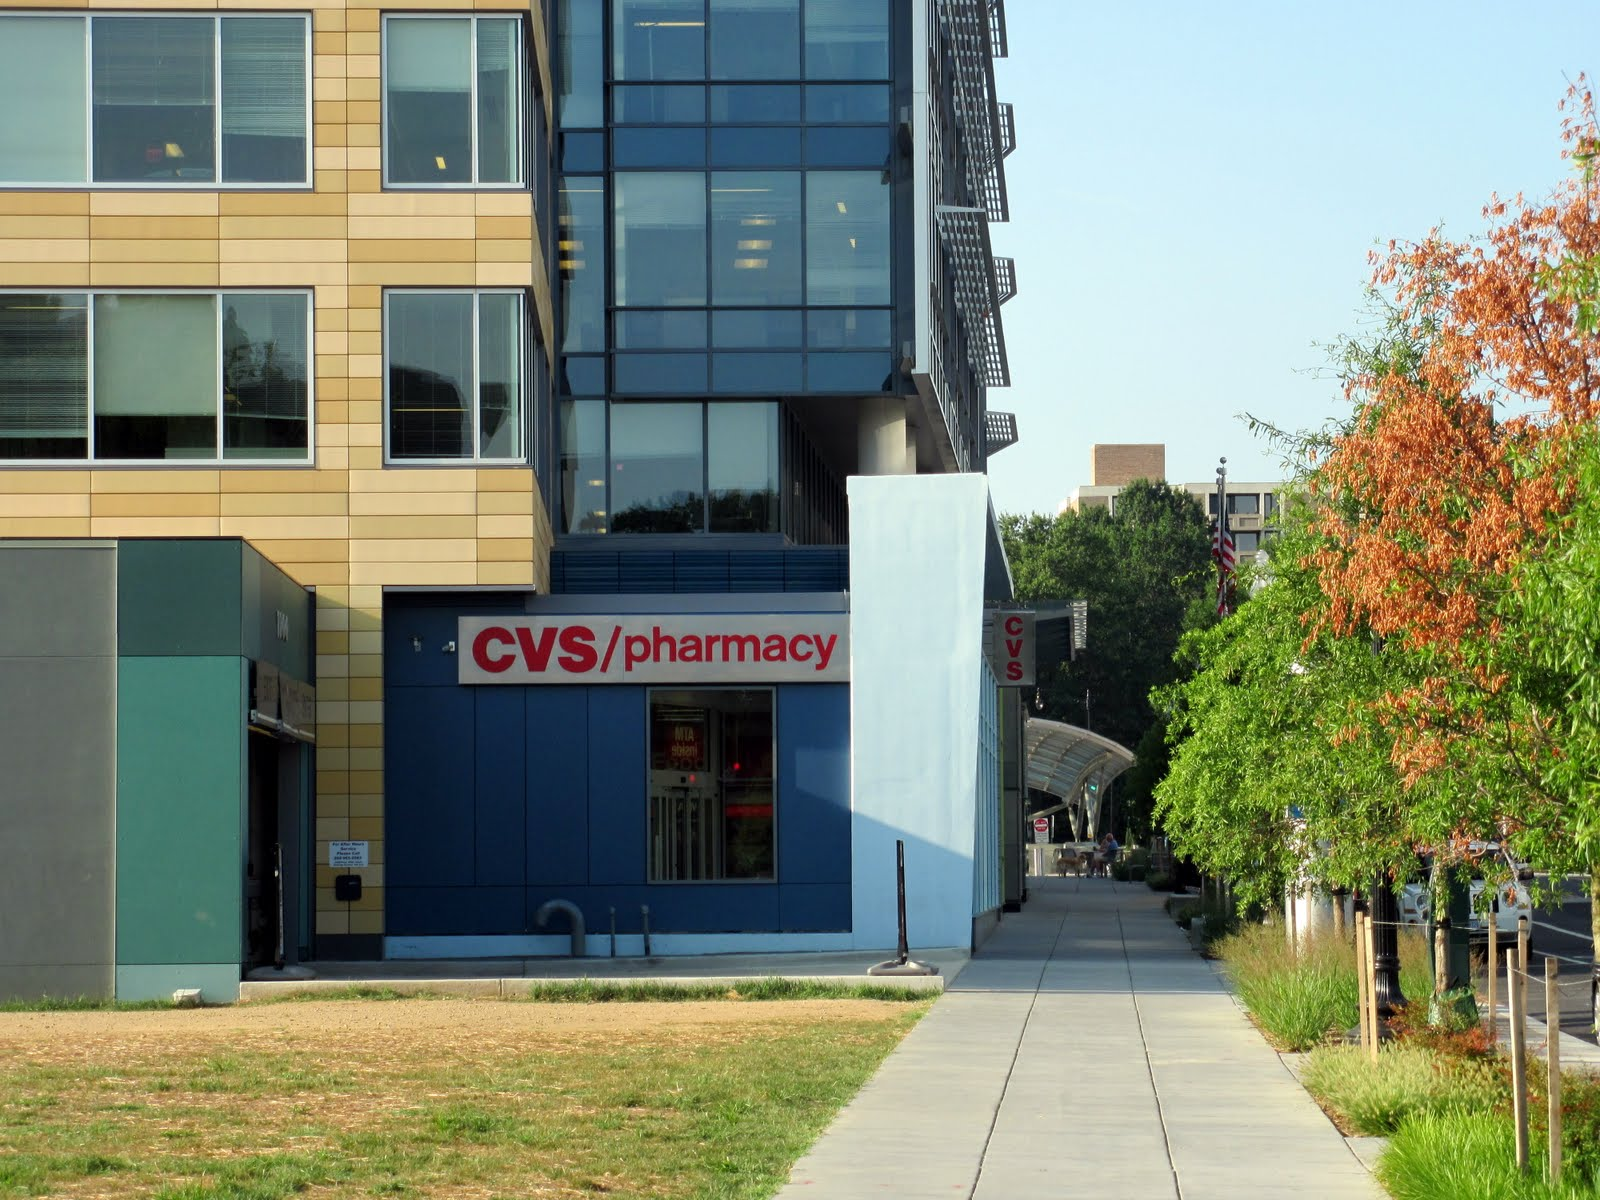 southwest the little quadrant that could cvs opens cvs opens